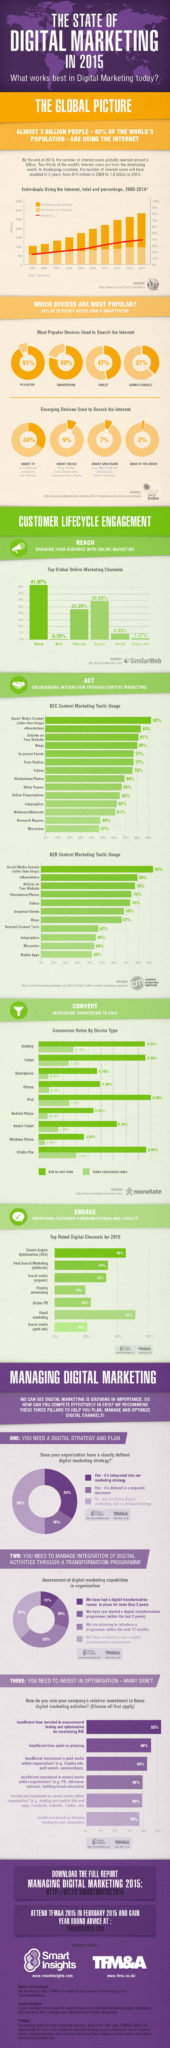 state-of-digital-marketing-infographic